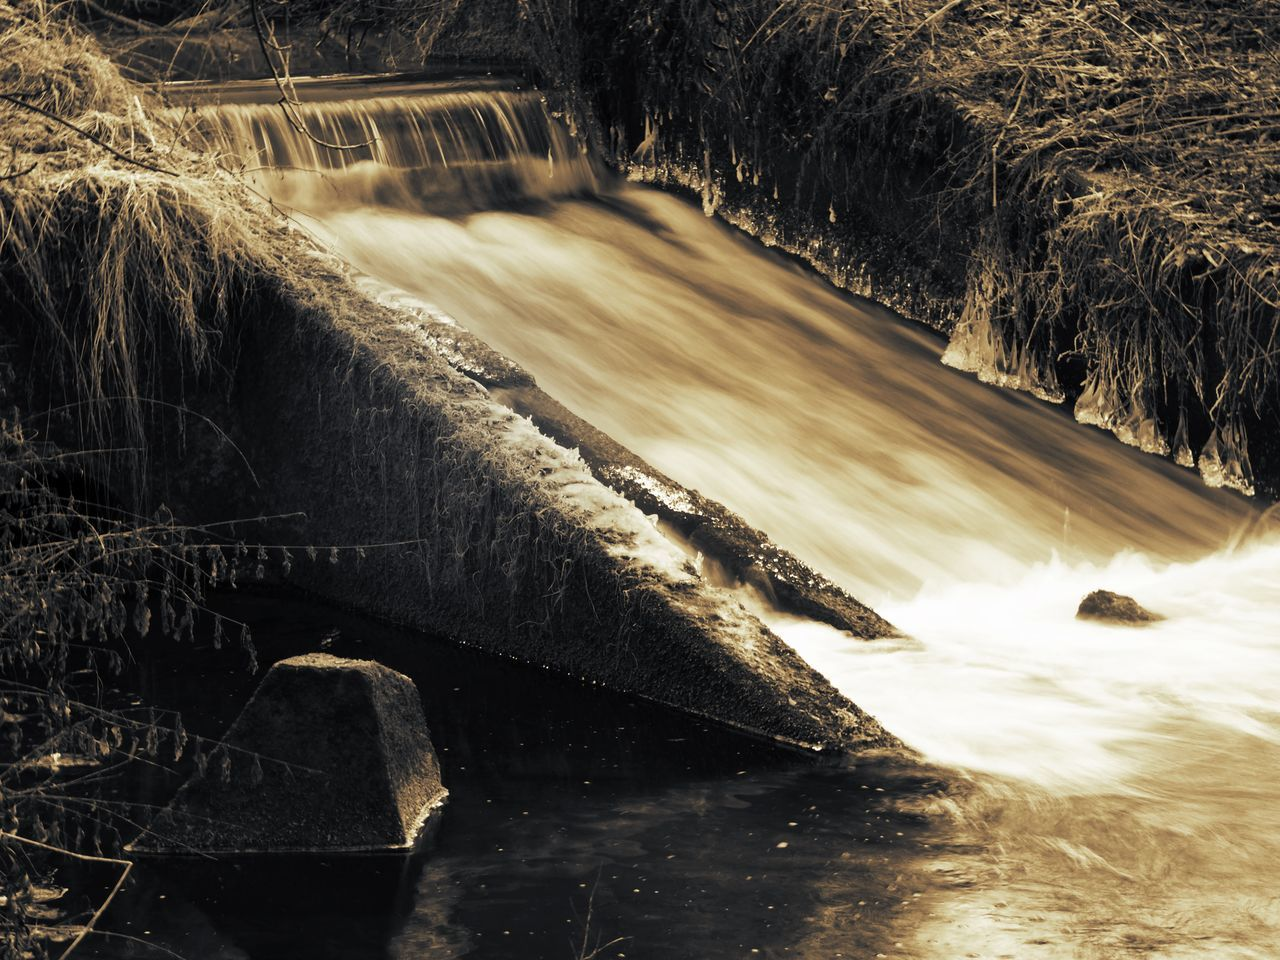 Beauty In Nature Landscape Langzeitaufnahme Langzeitbelichtung Motion Nature The River The River Thames Water Waterfall